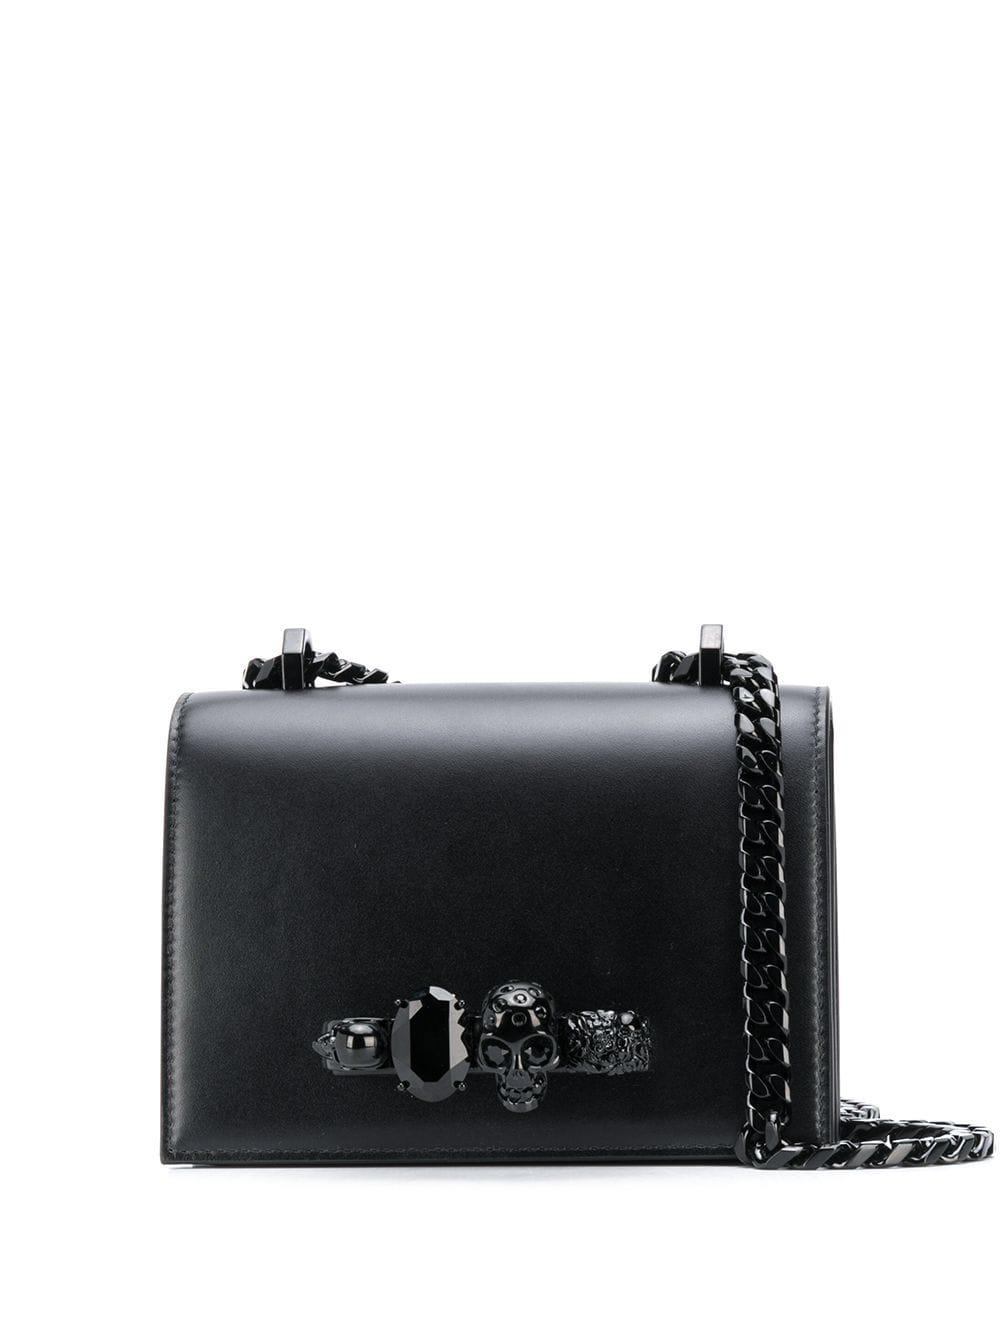 Leather Small Jeweled Handbag With Chain Item # 558541-CMO0V